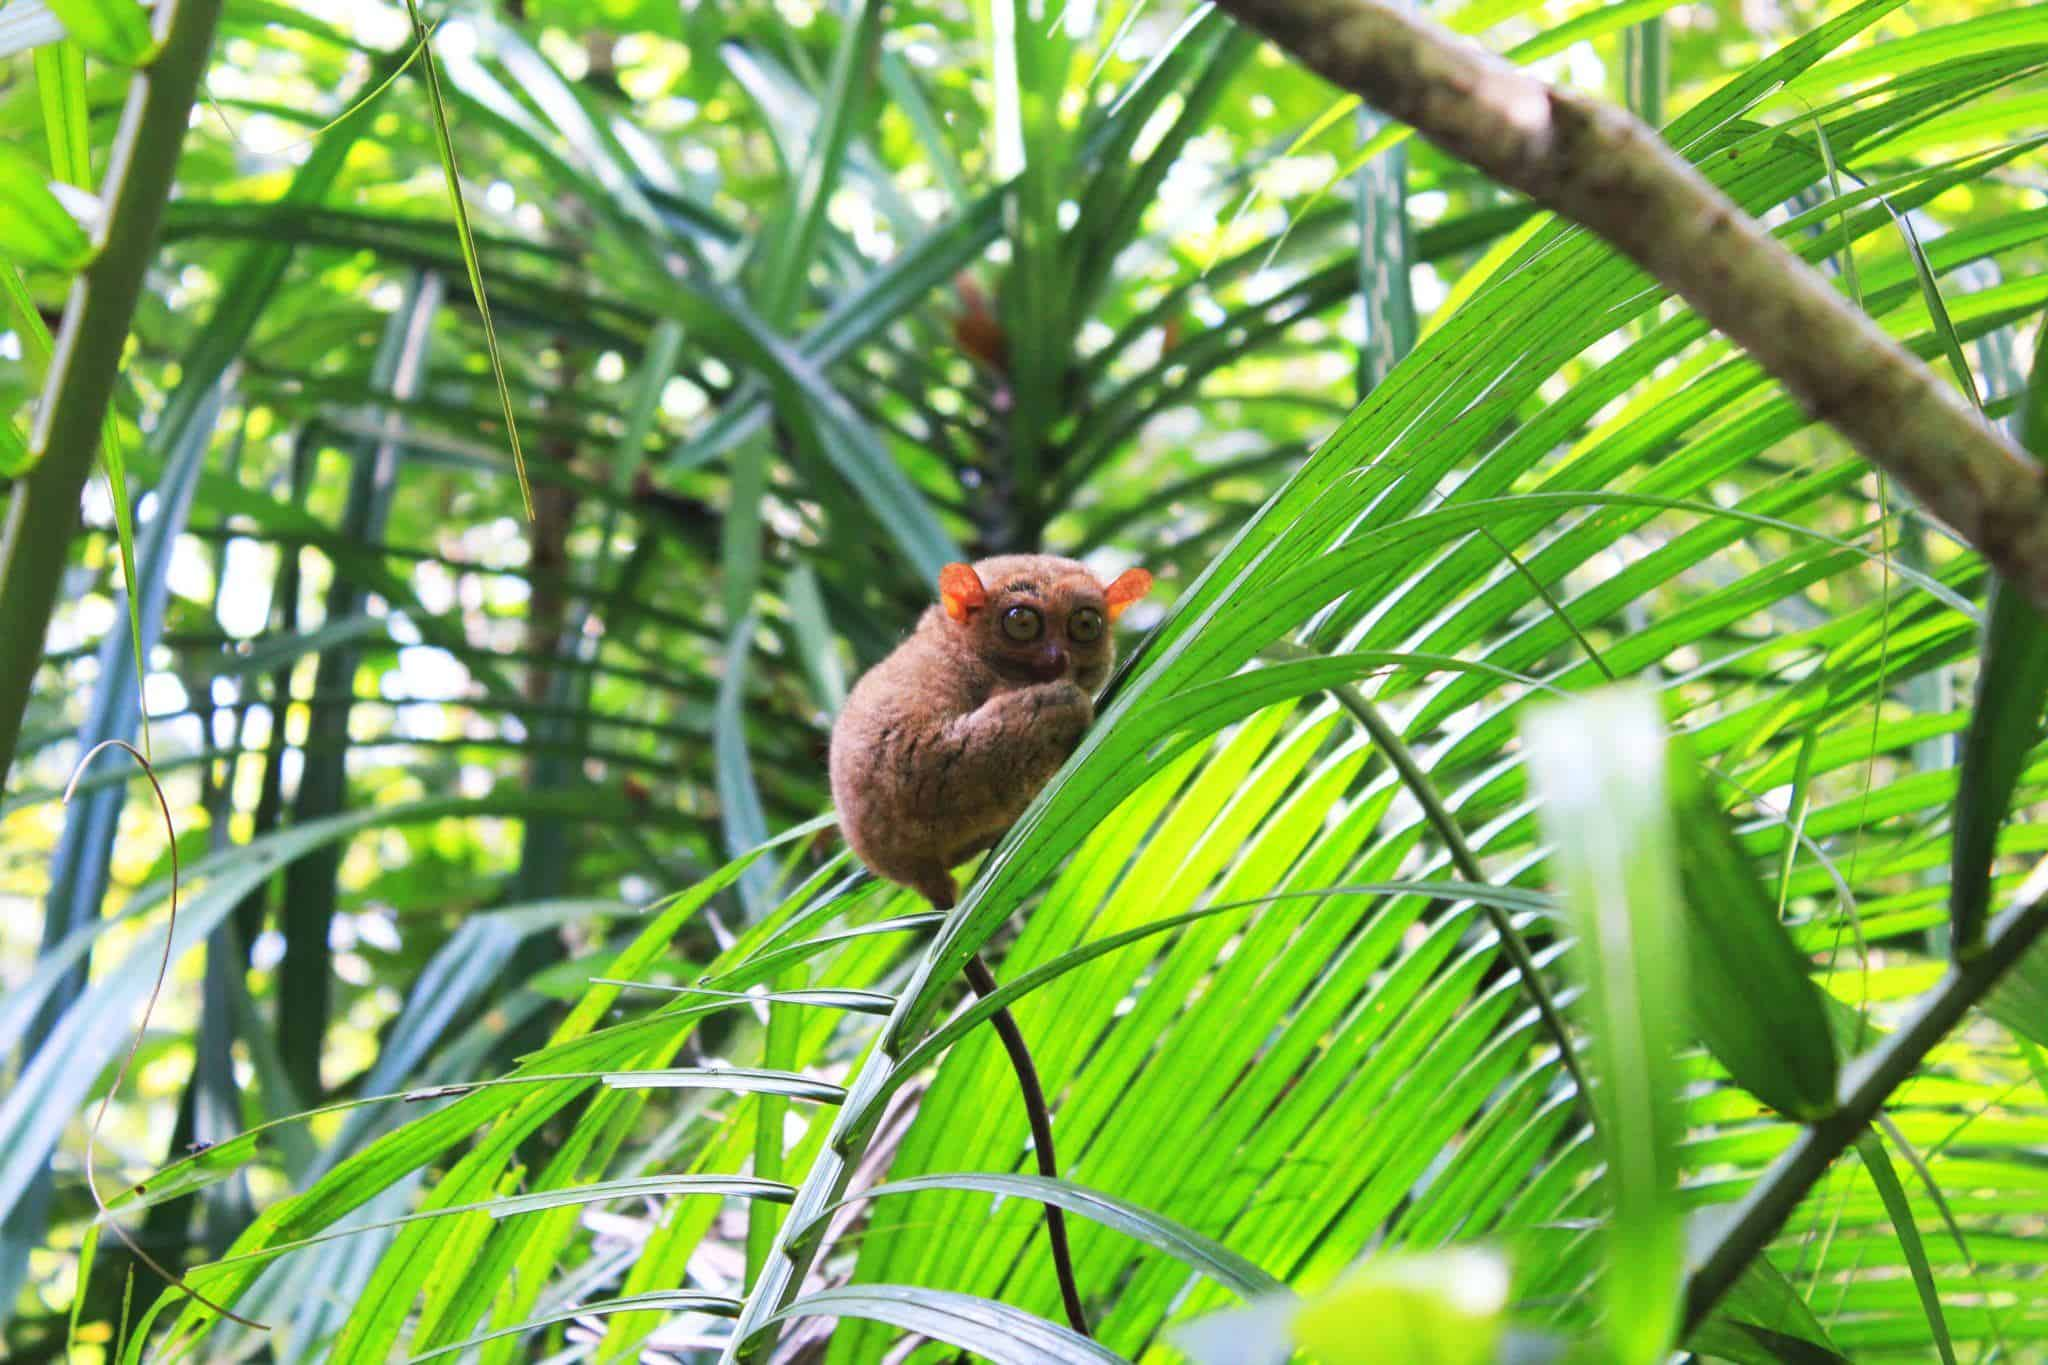 The Tarsier: The Cutest Animal You've Never Heard of